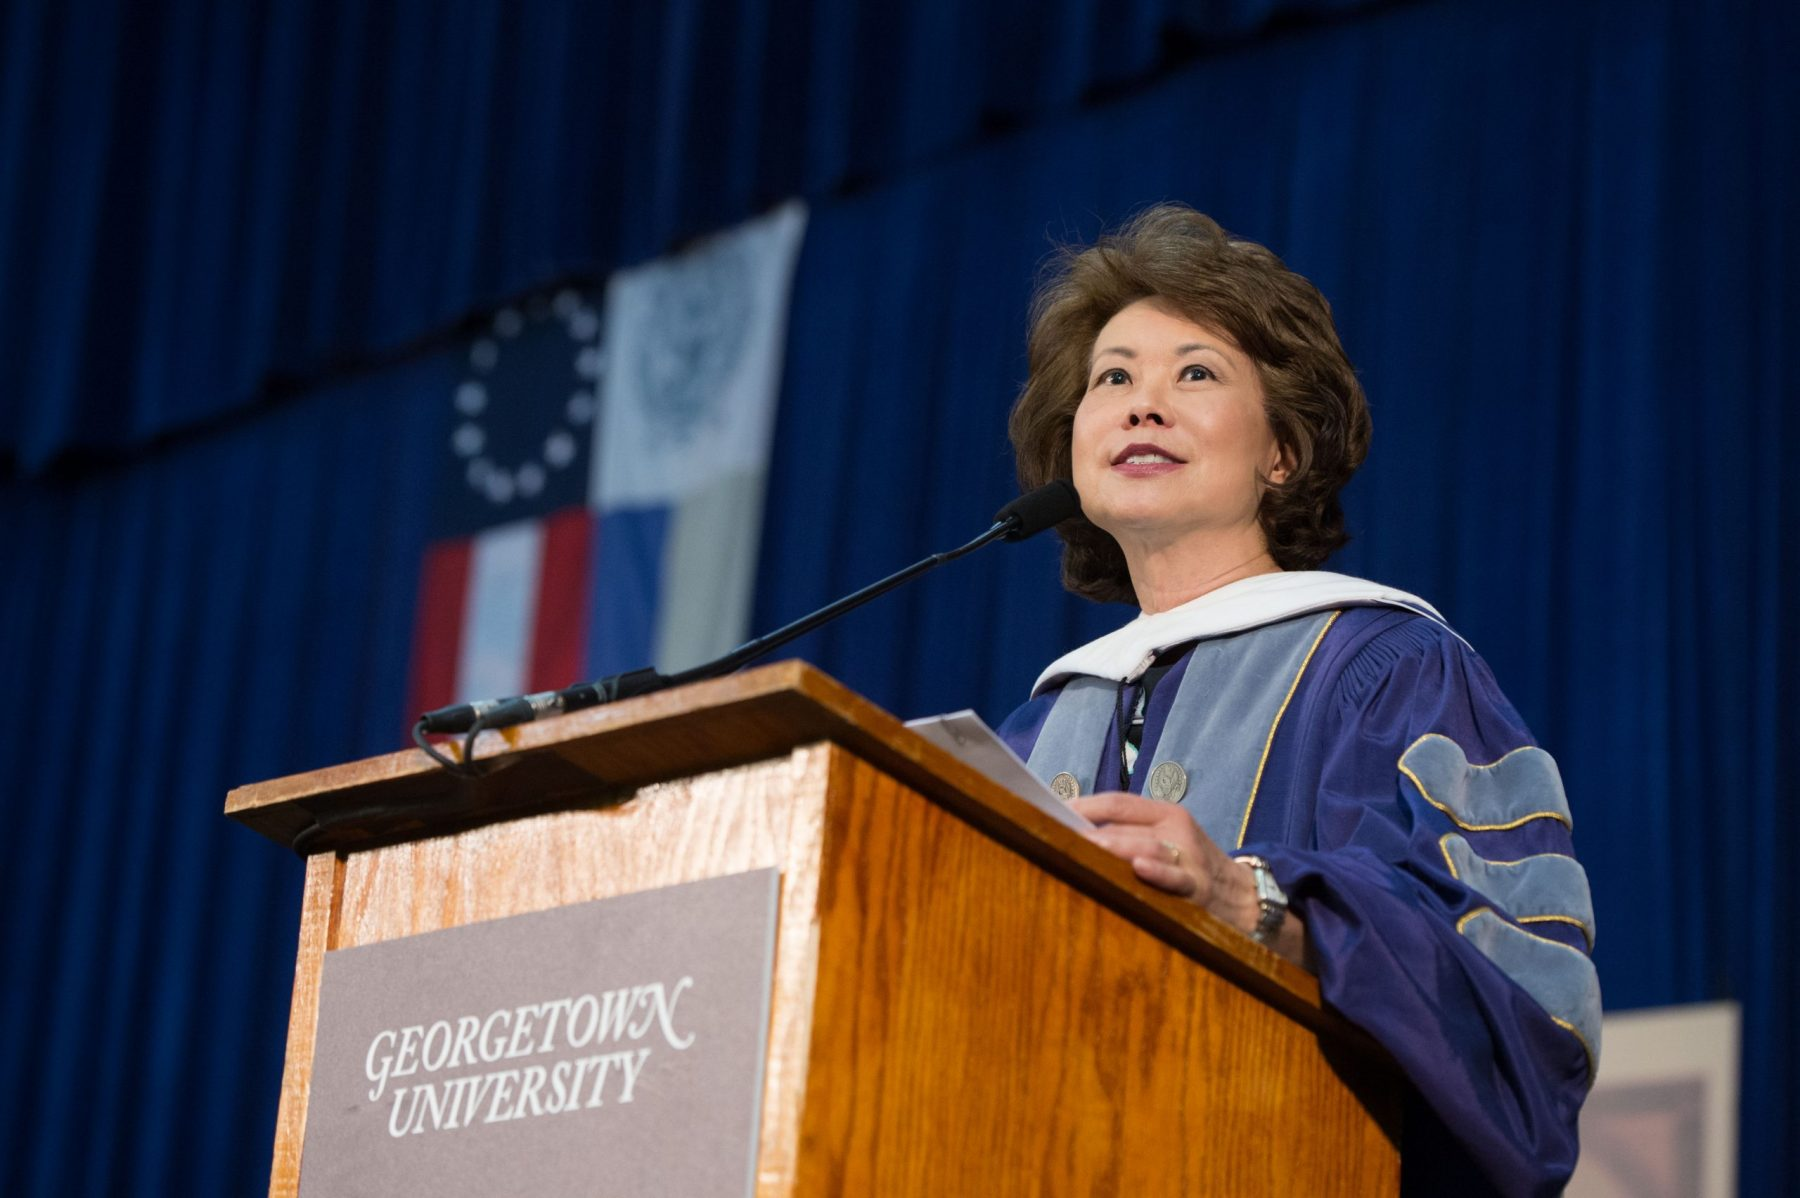 The Honorable Elaine Chao gives the Commencement speech at Georgetown University.